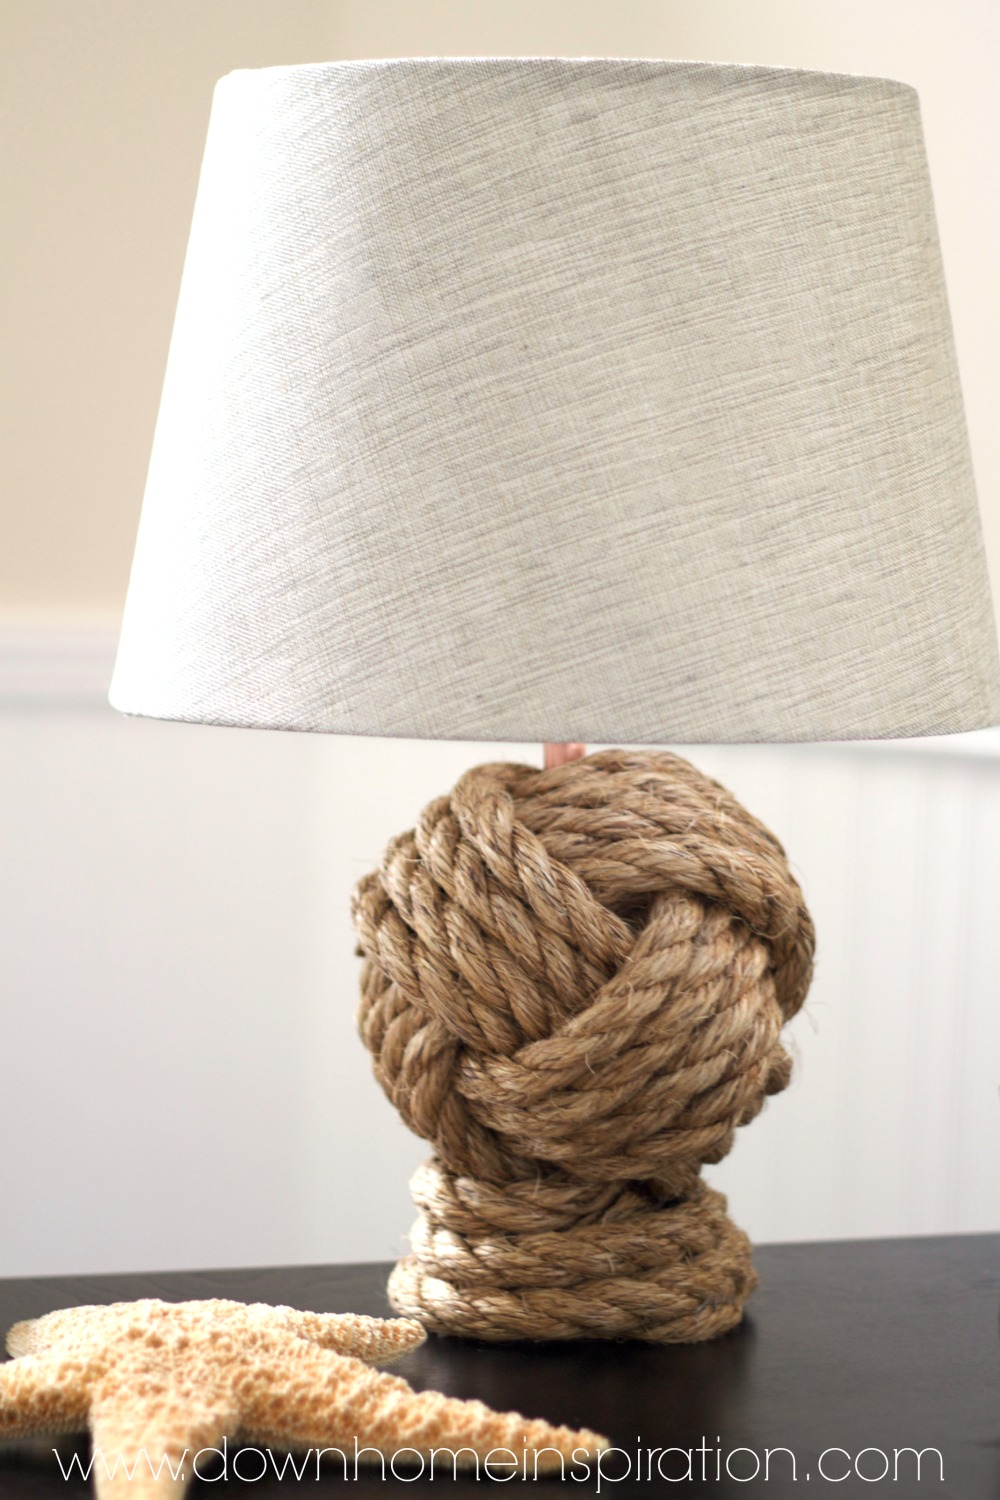 nautical themed lamps photo - 4